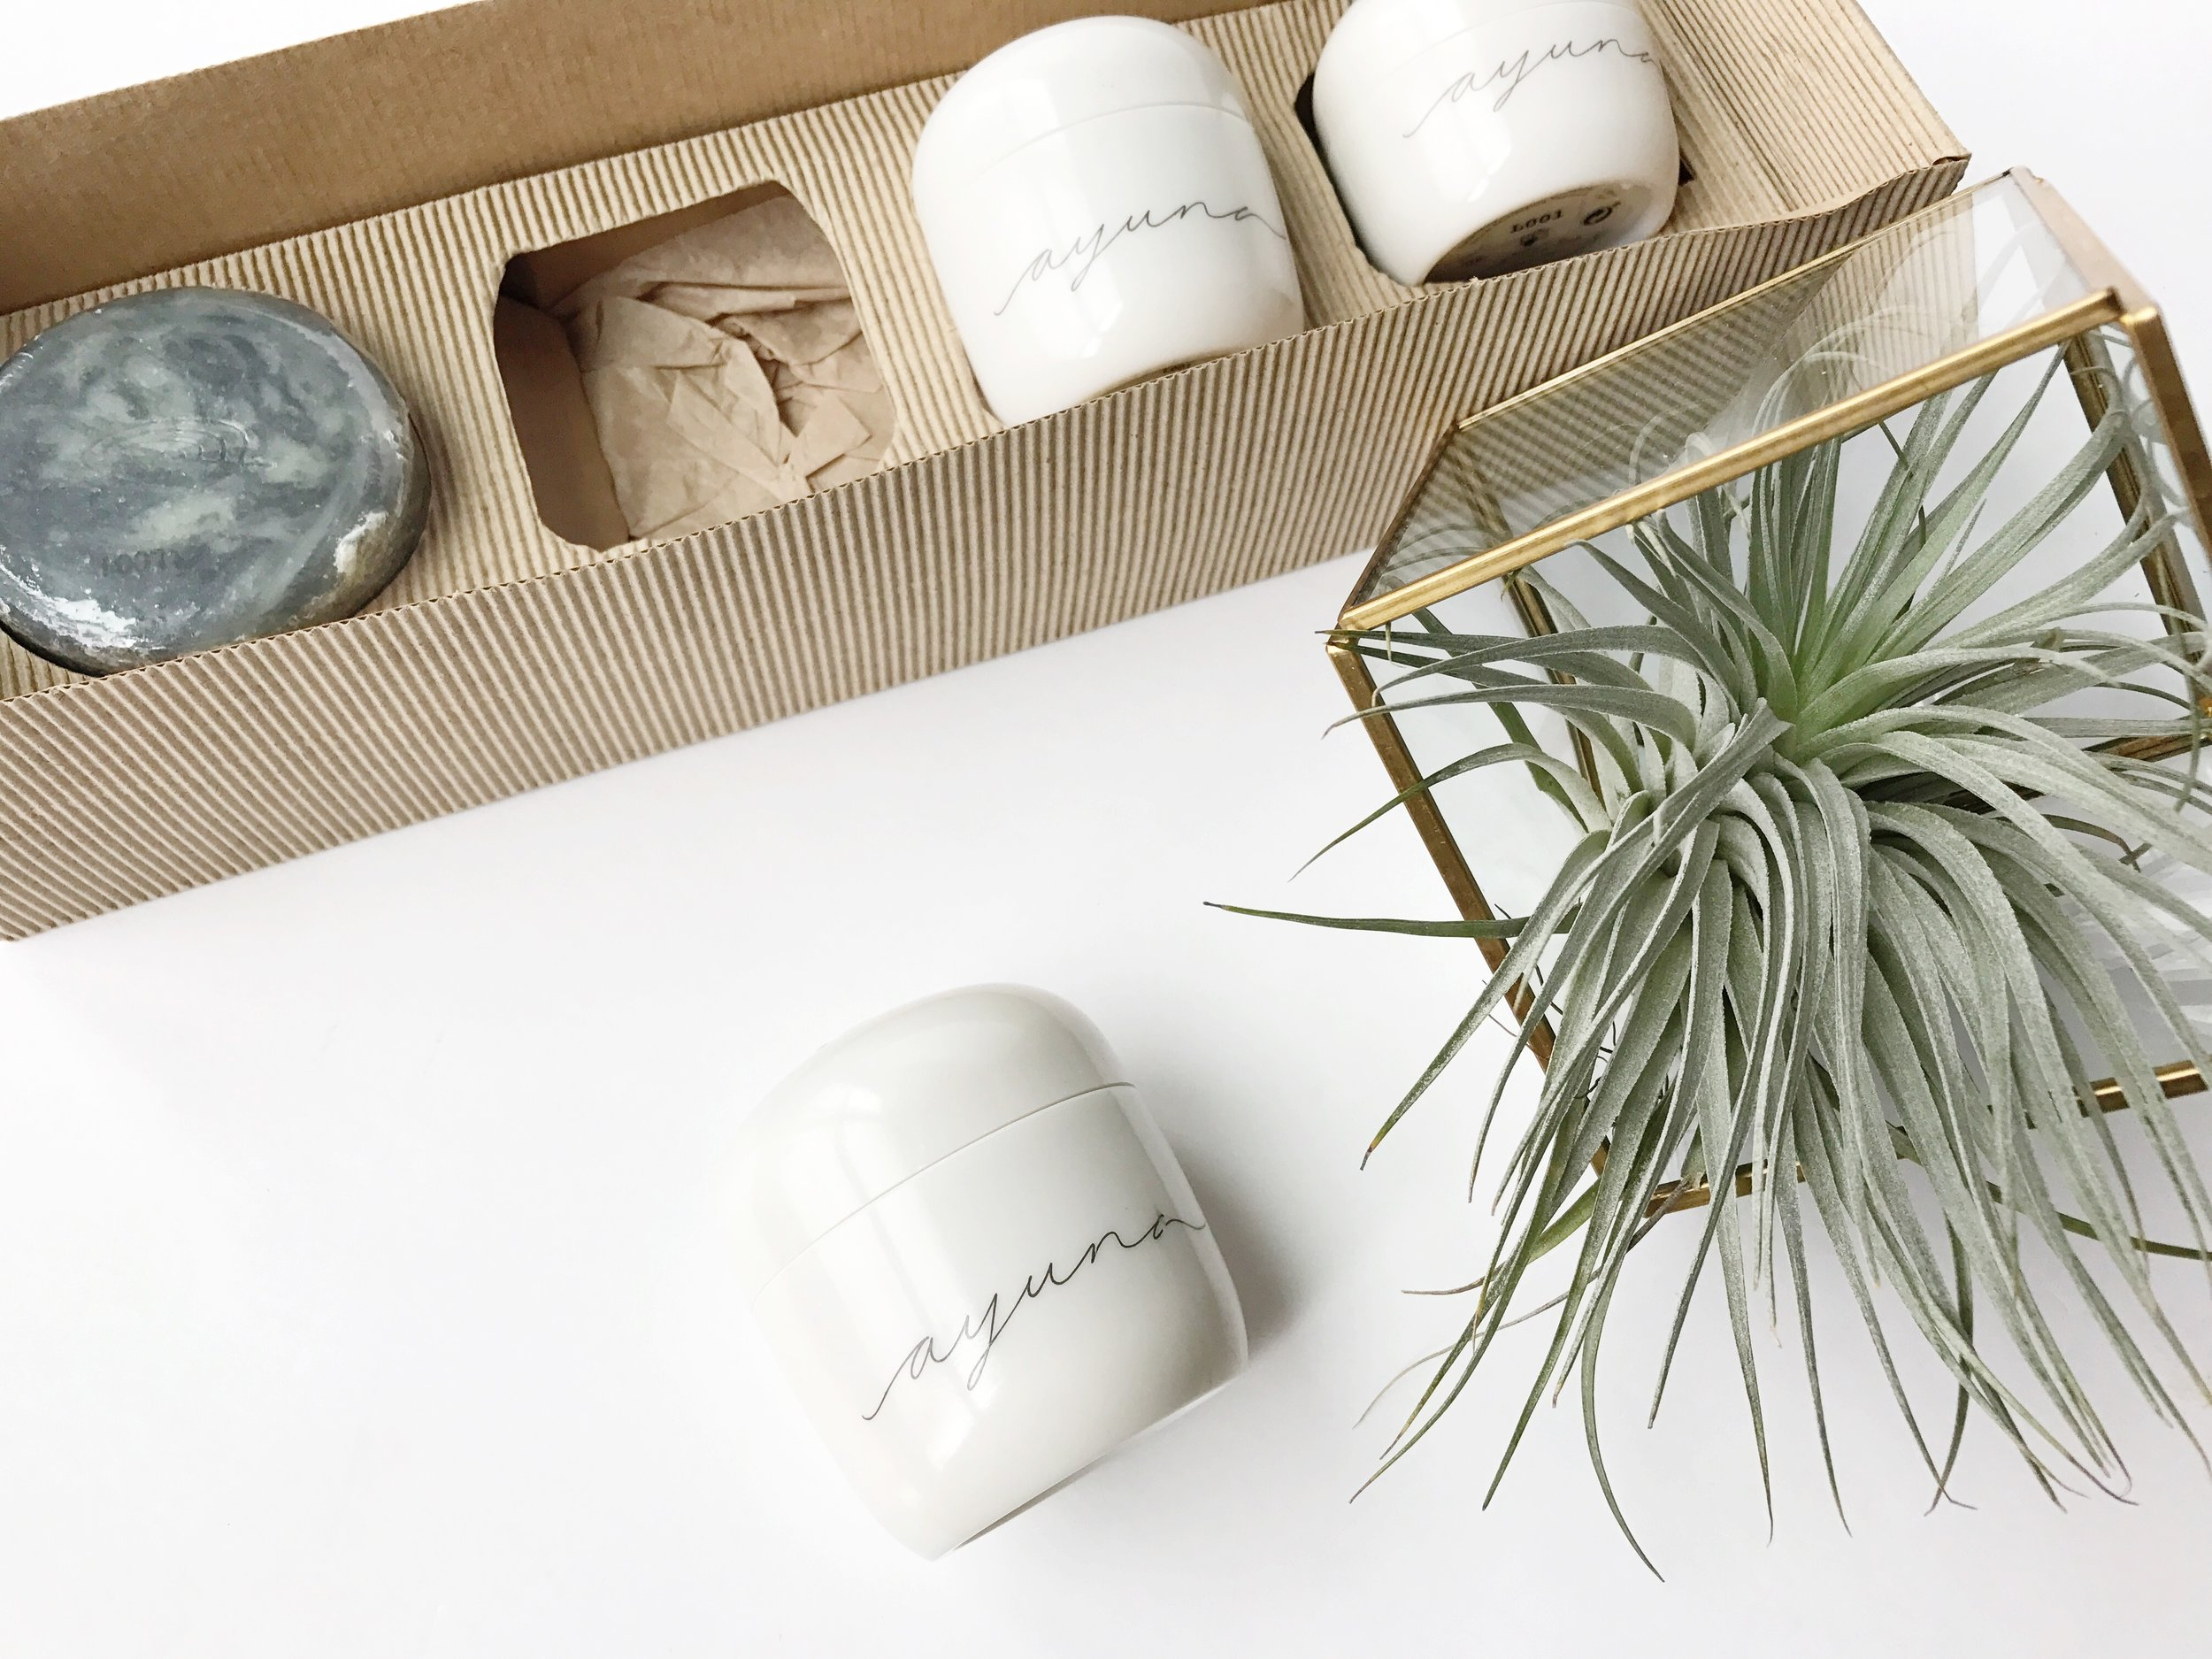 AYUNA Skincare and the Science Behind Topical Fasting | janny: organically.